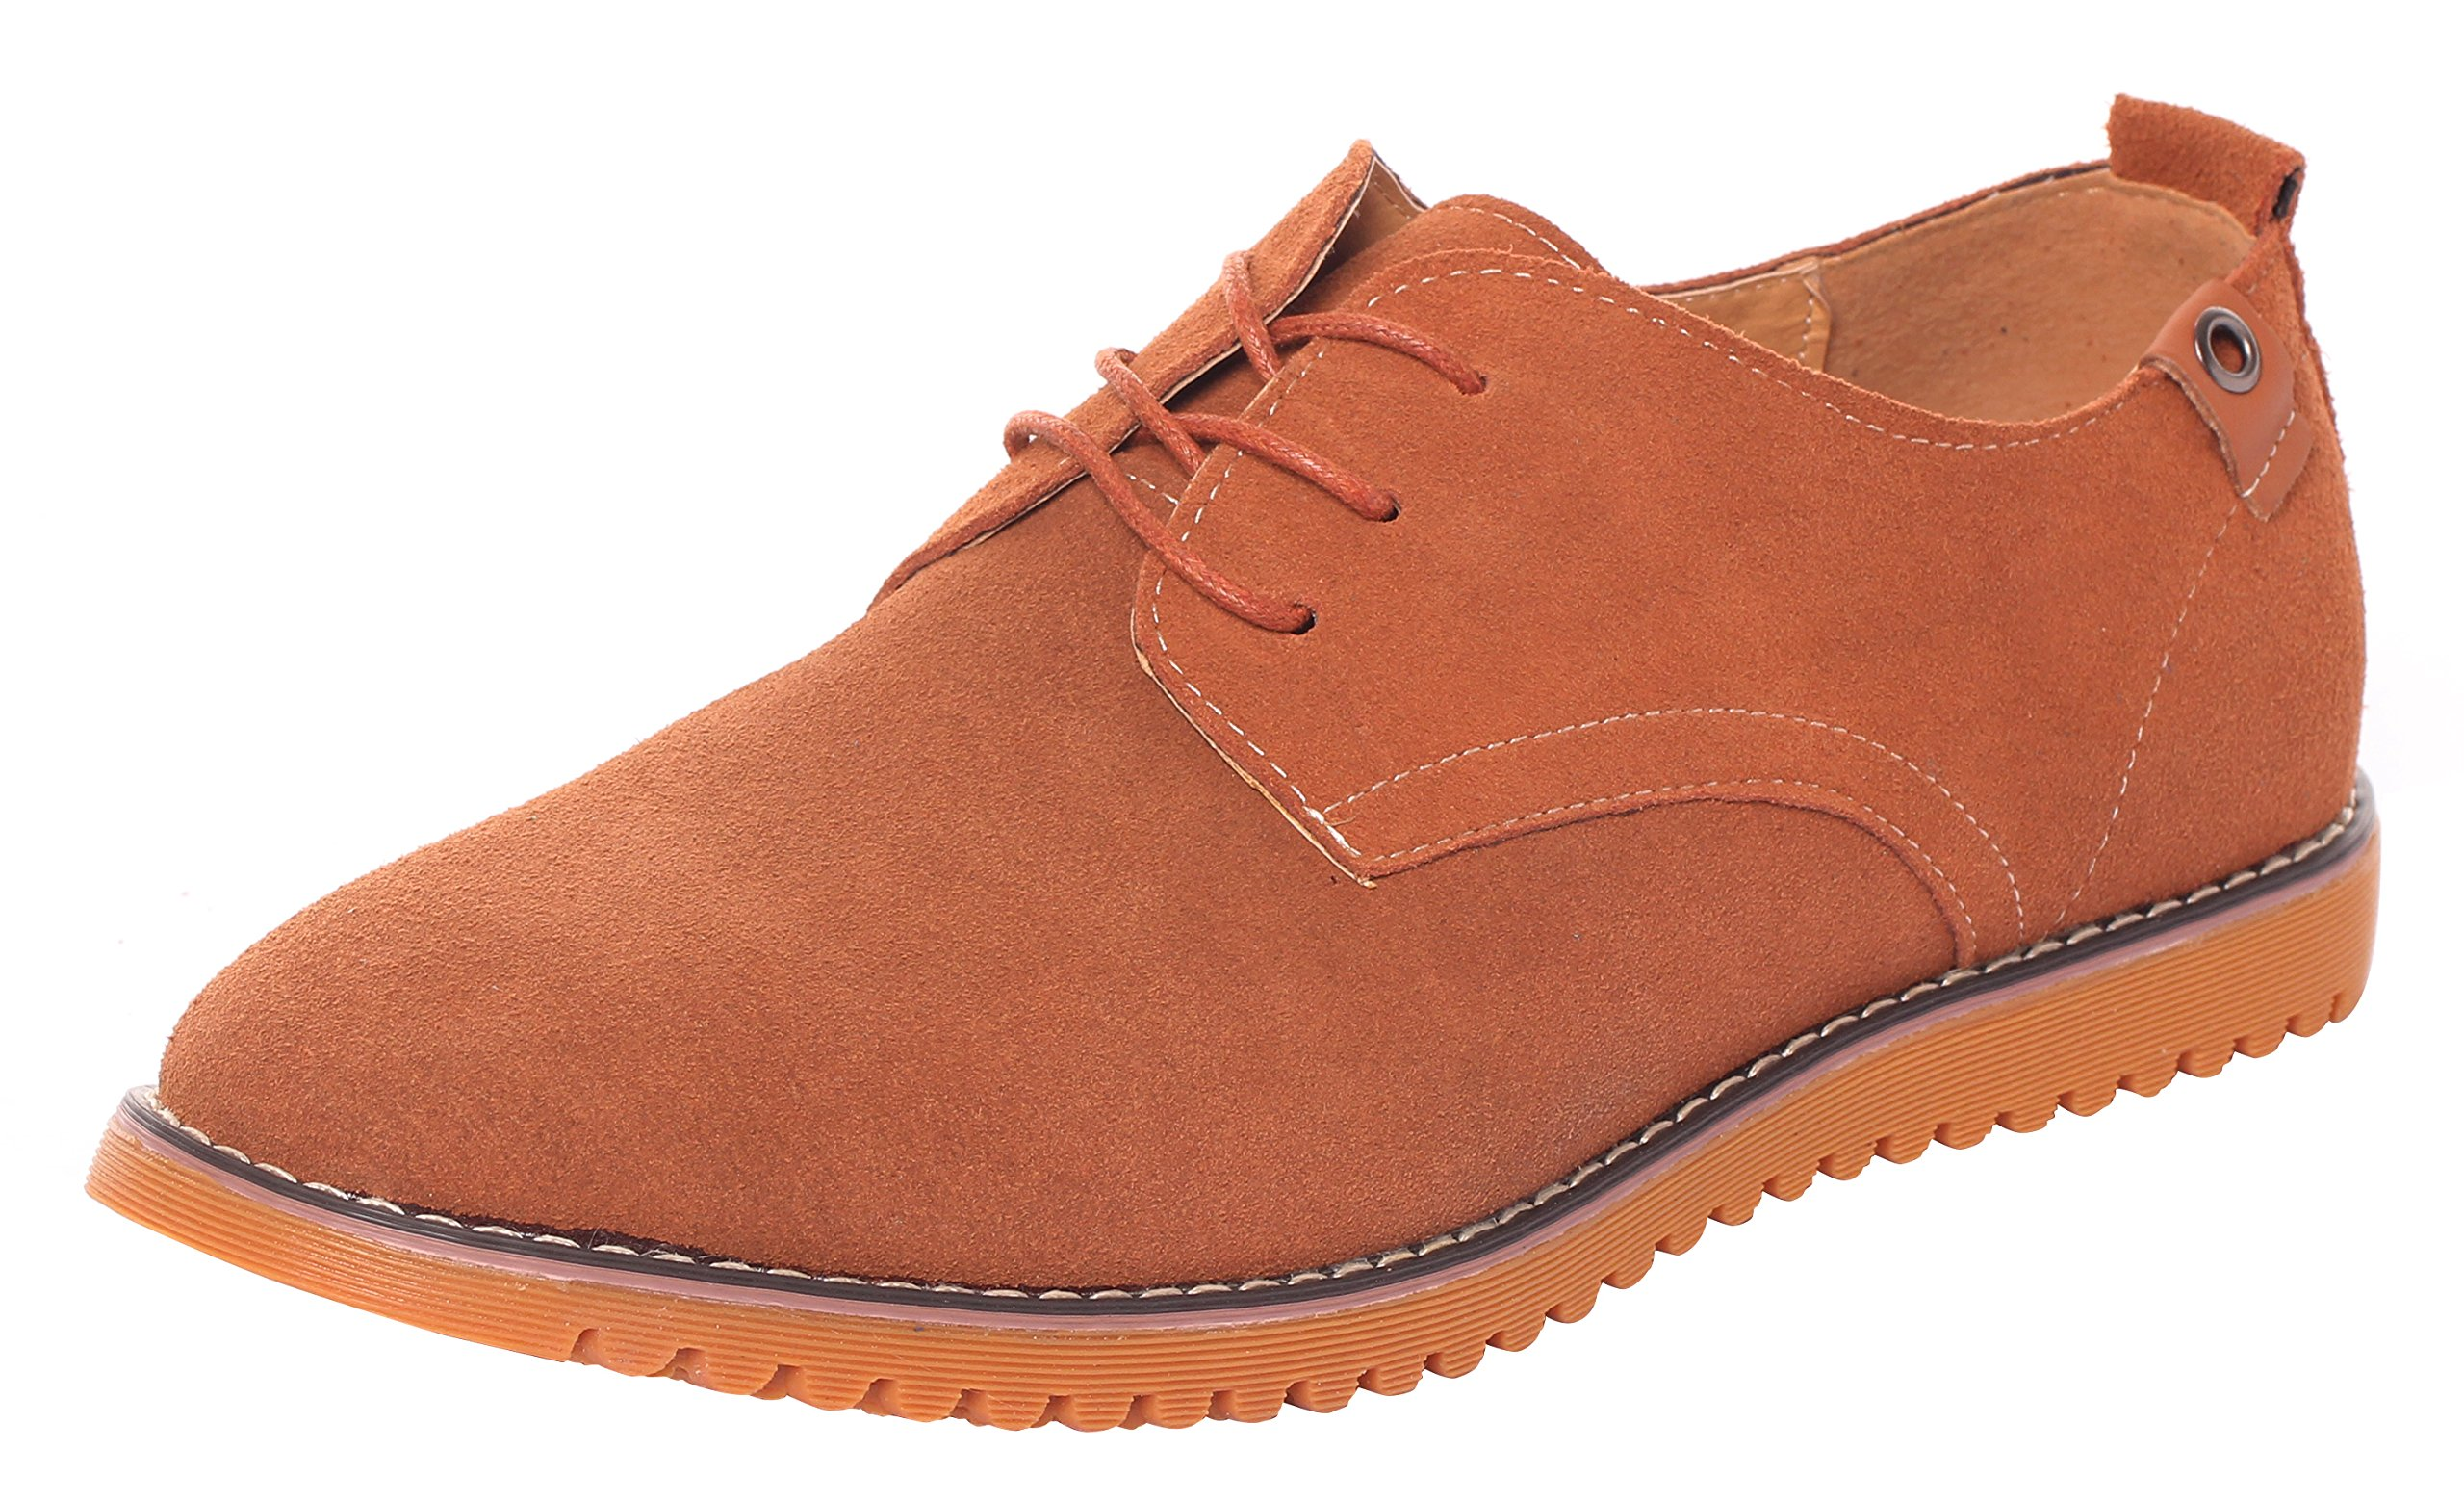 Runday Men's Fashion Suede Leather Shoes Round Toe Lace Up Casual Oxfords(9 D(M)US,tan) (9 D(M) US, Tan)